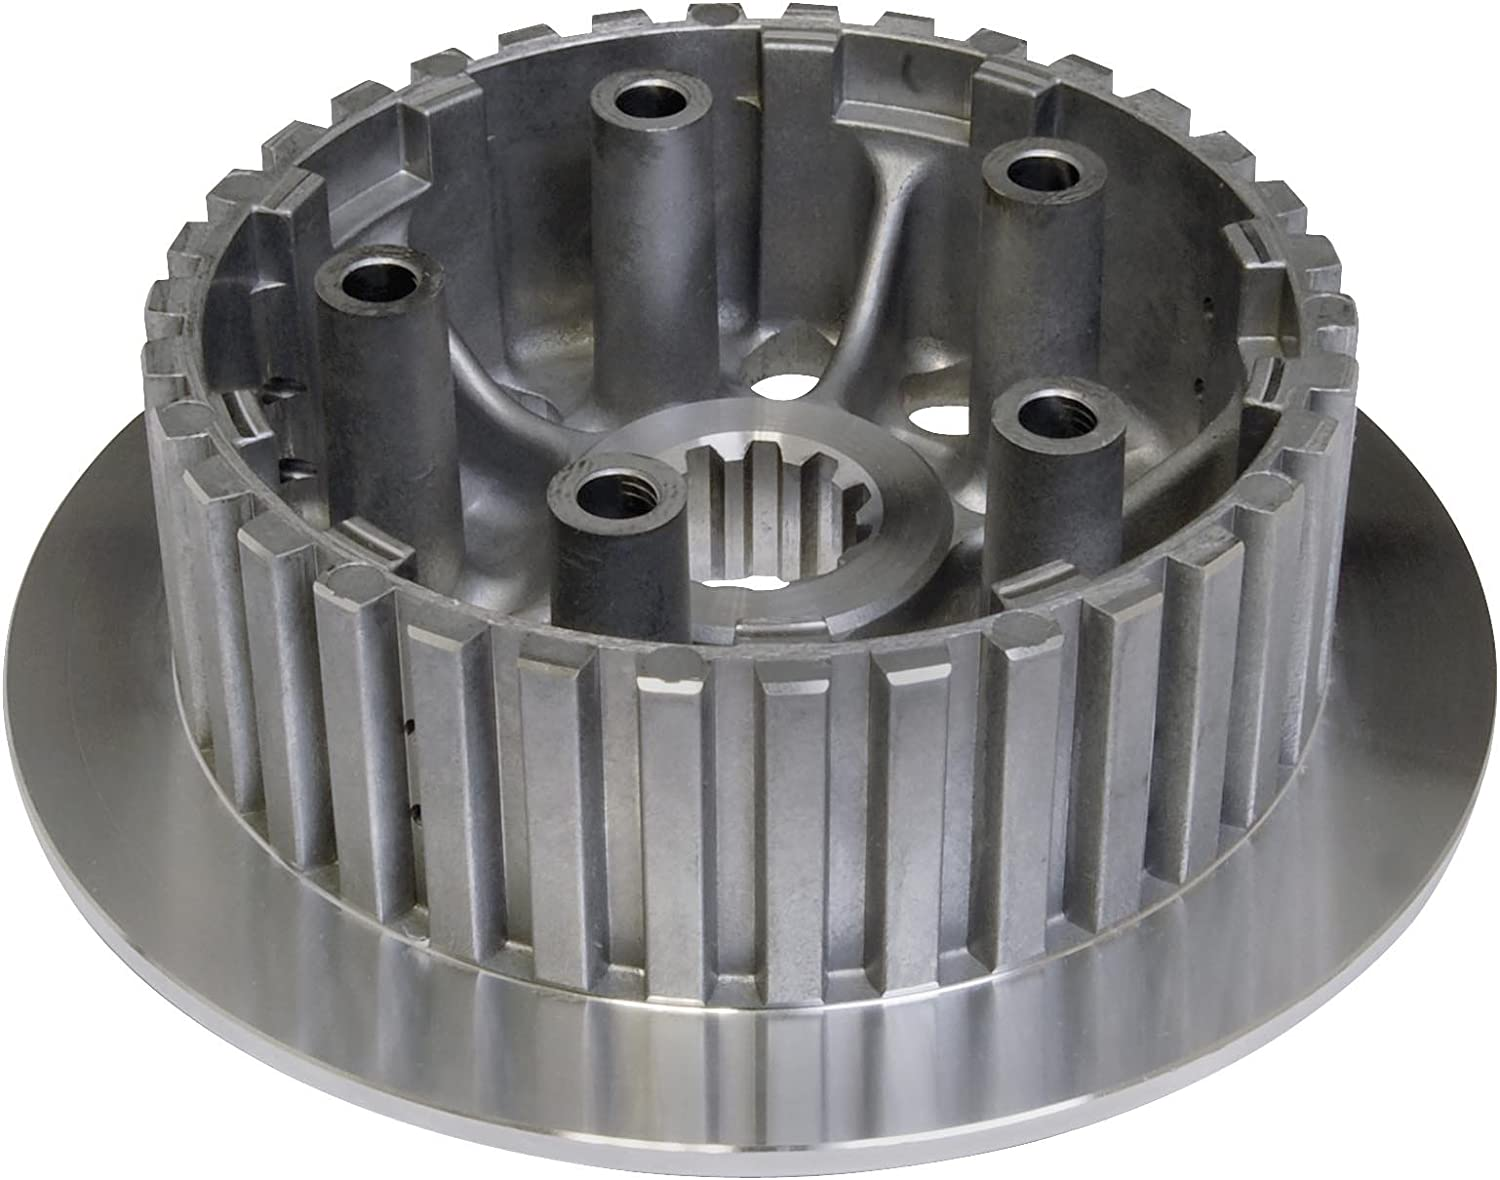 Pro-X - 18.1499 Clutch Inner Hub Limited price sale Discount mail order